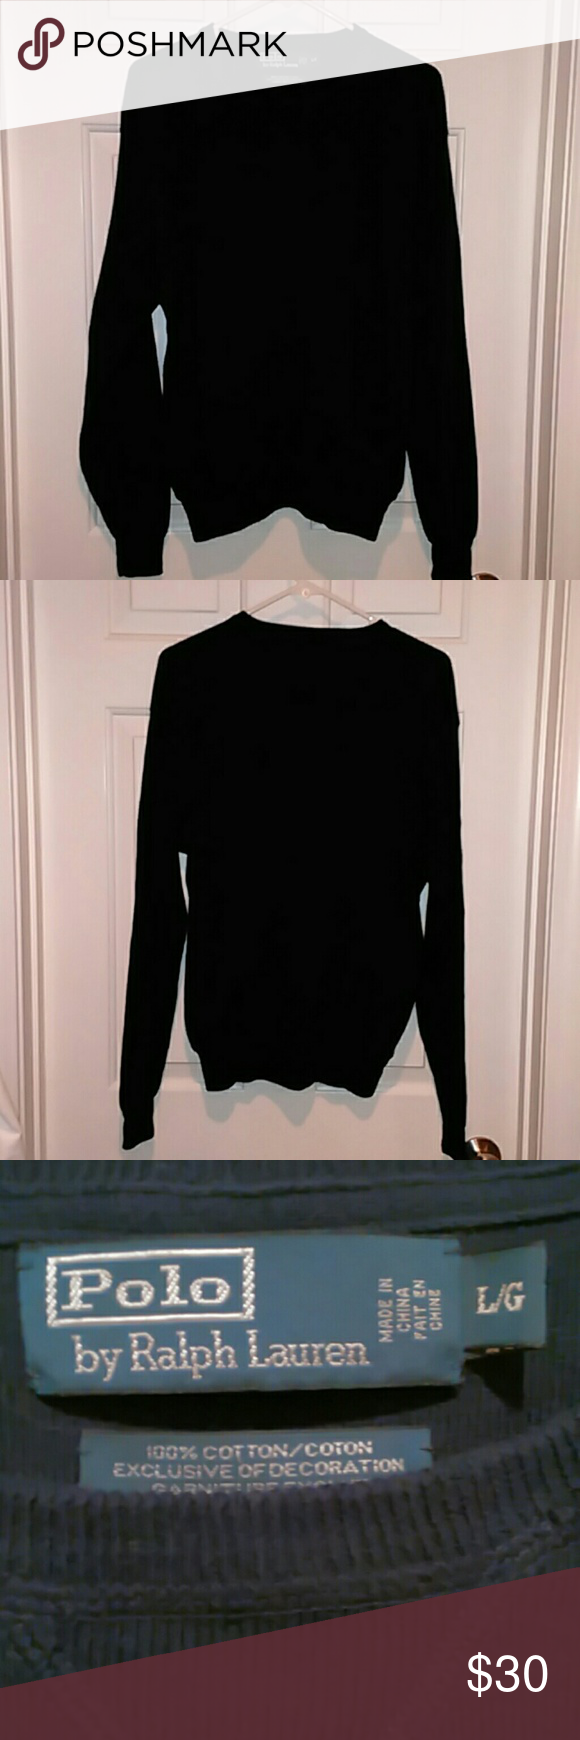 Polo by Ralph Lauren sweater Navy blue long sleeve crewneck Polo sweater with the iconic logo over the heart. Size Large, like new. Polo by Ralph Lauren Sweaters Crewneck